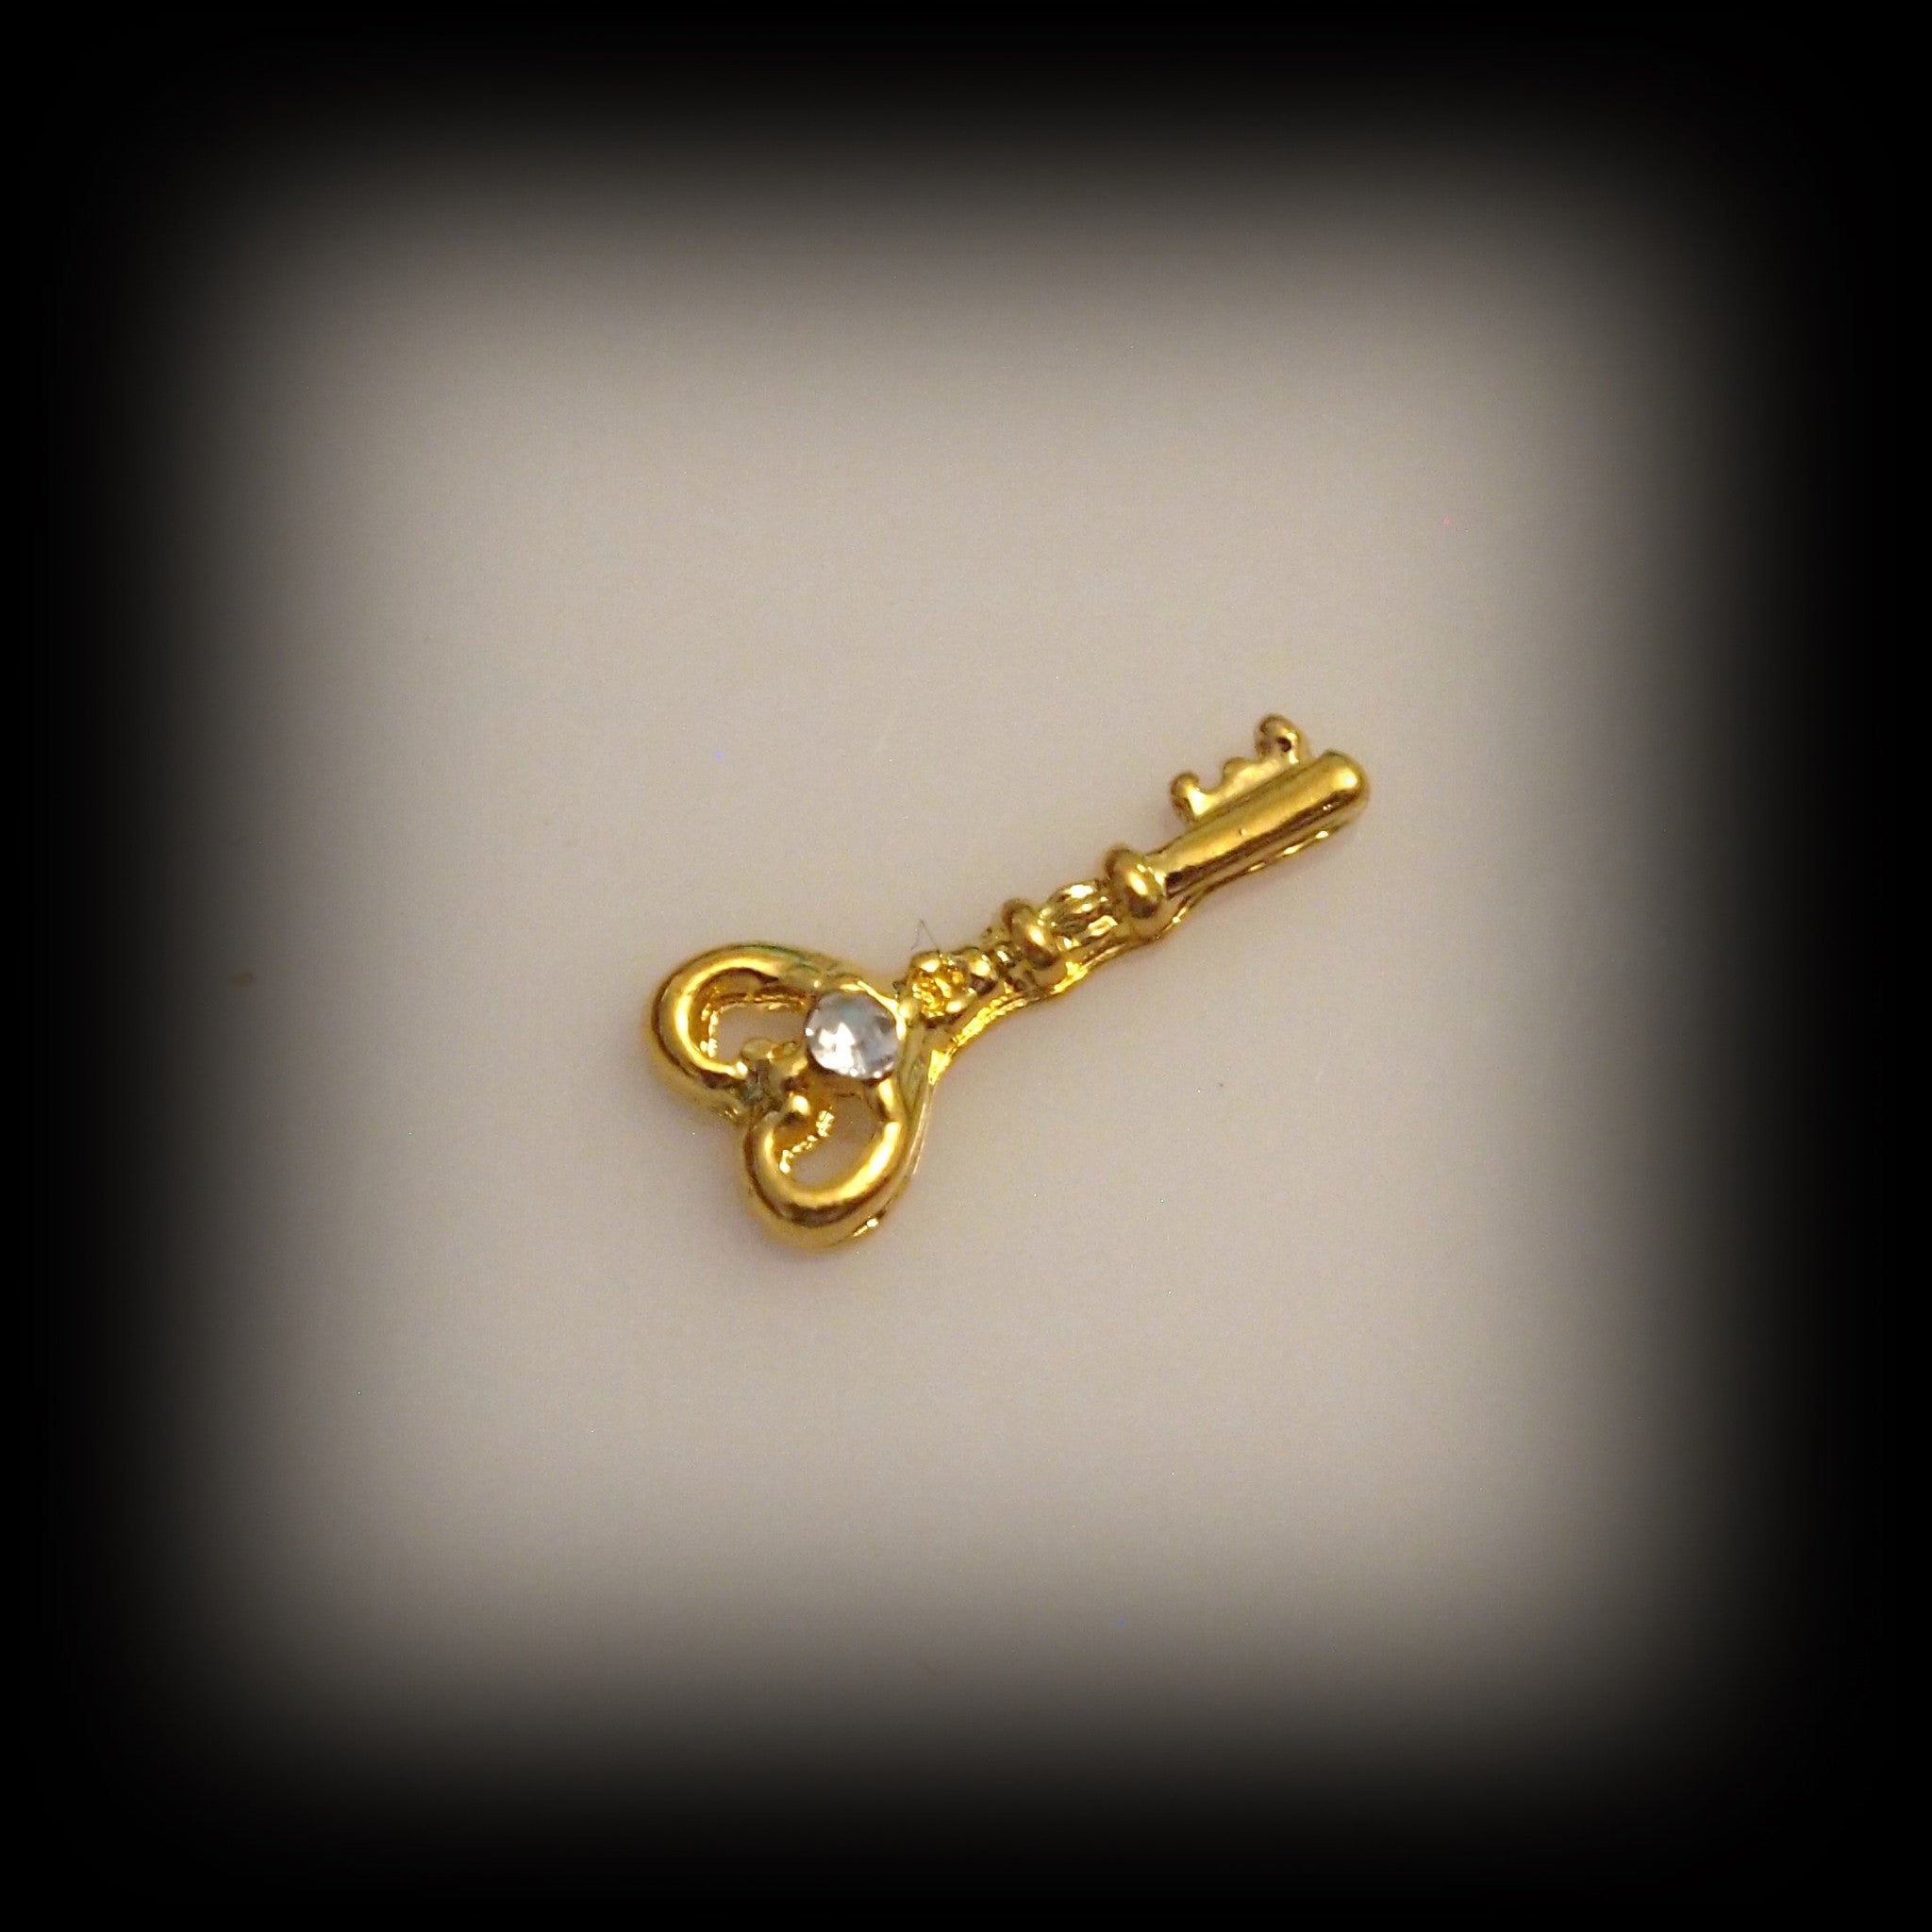 Gold Key Floating Charm - Find Something Special